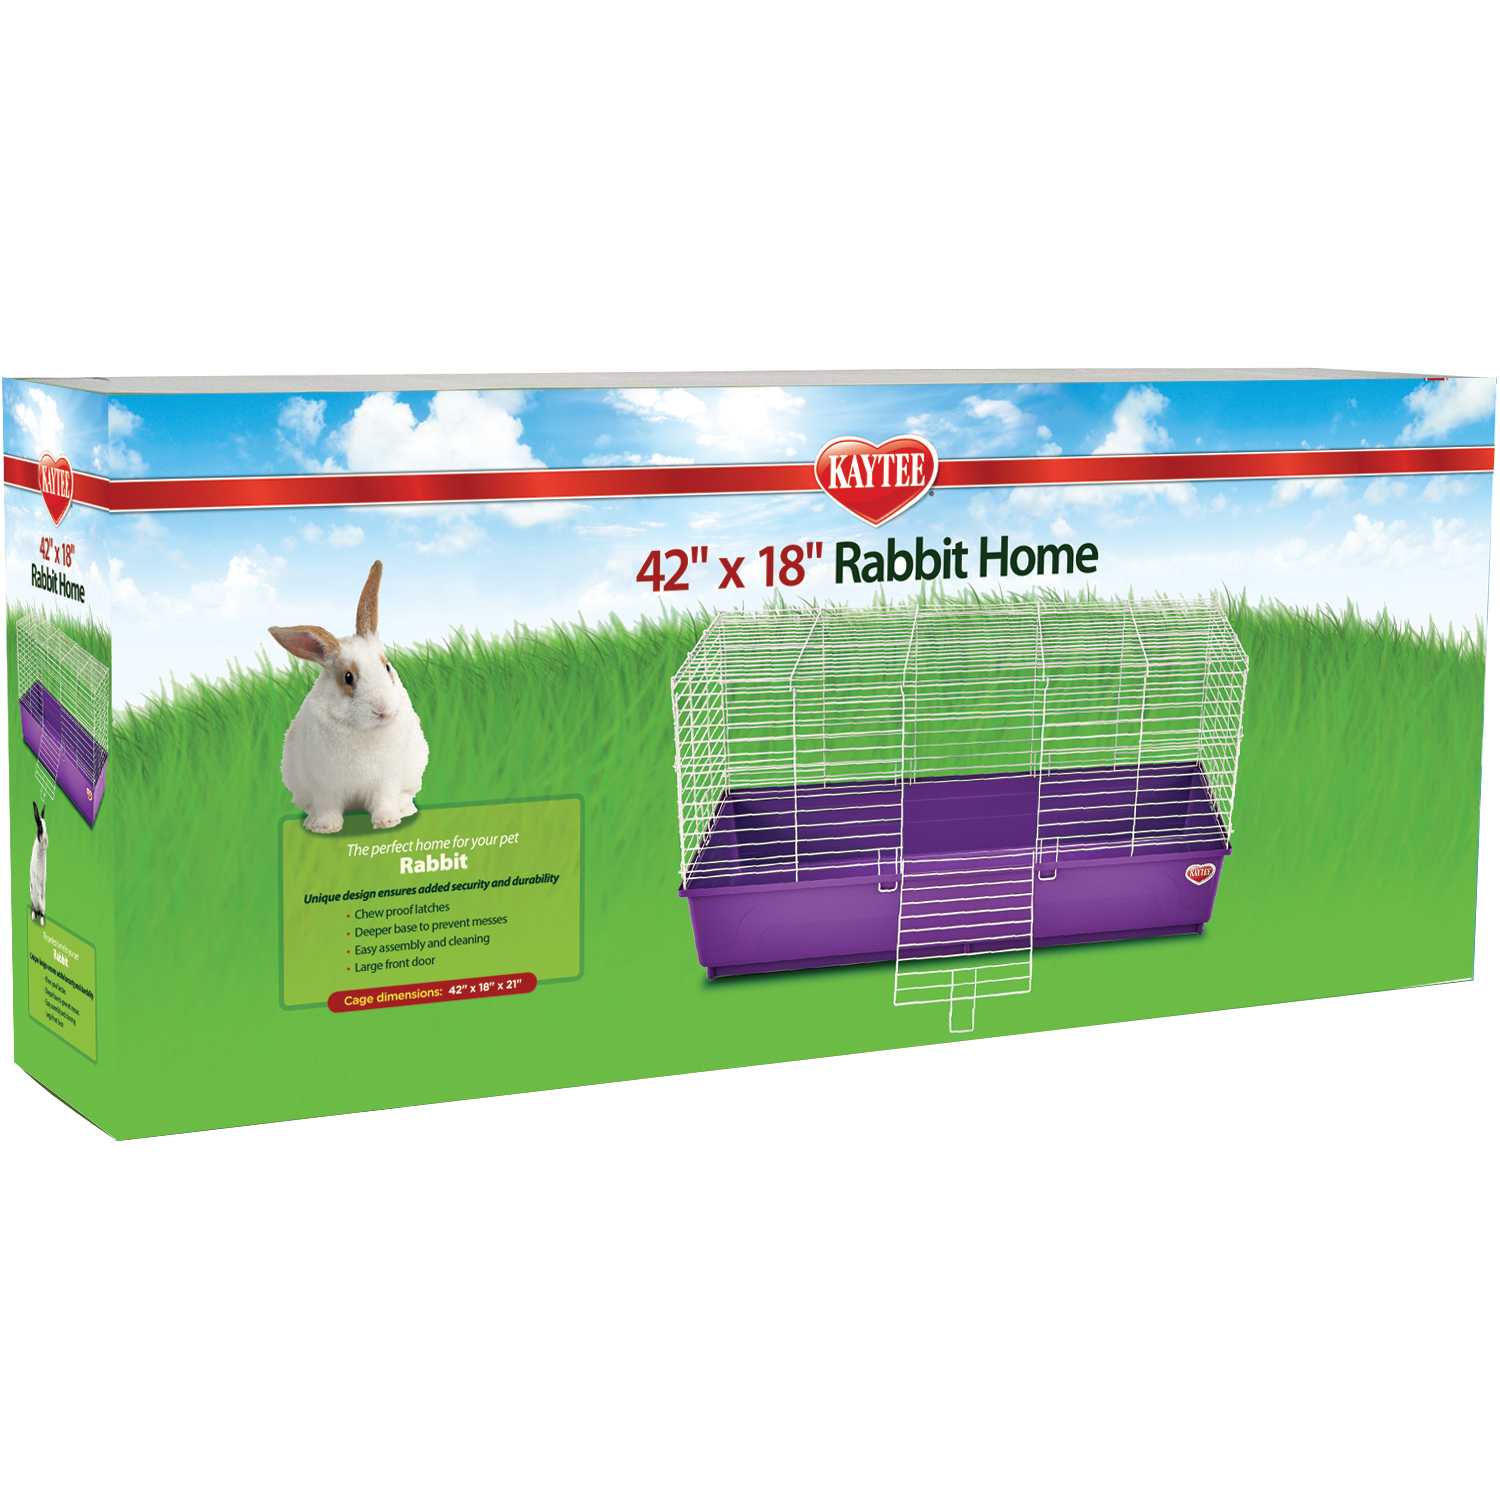 Kaytee Rabbit Home Starter Kit